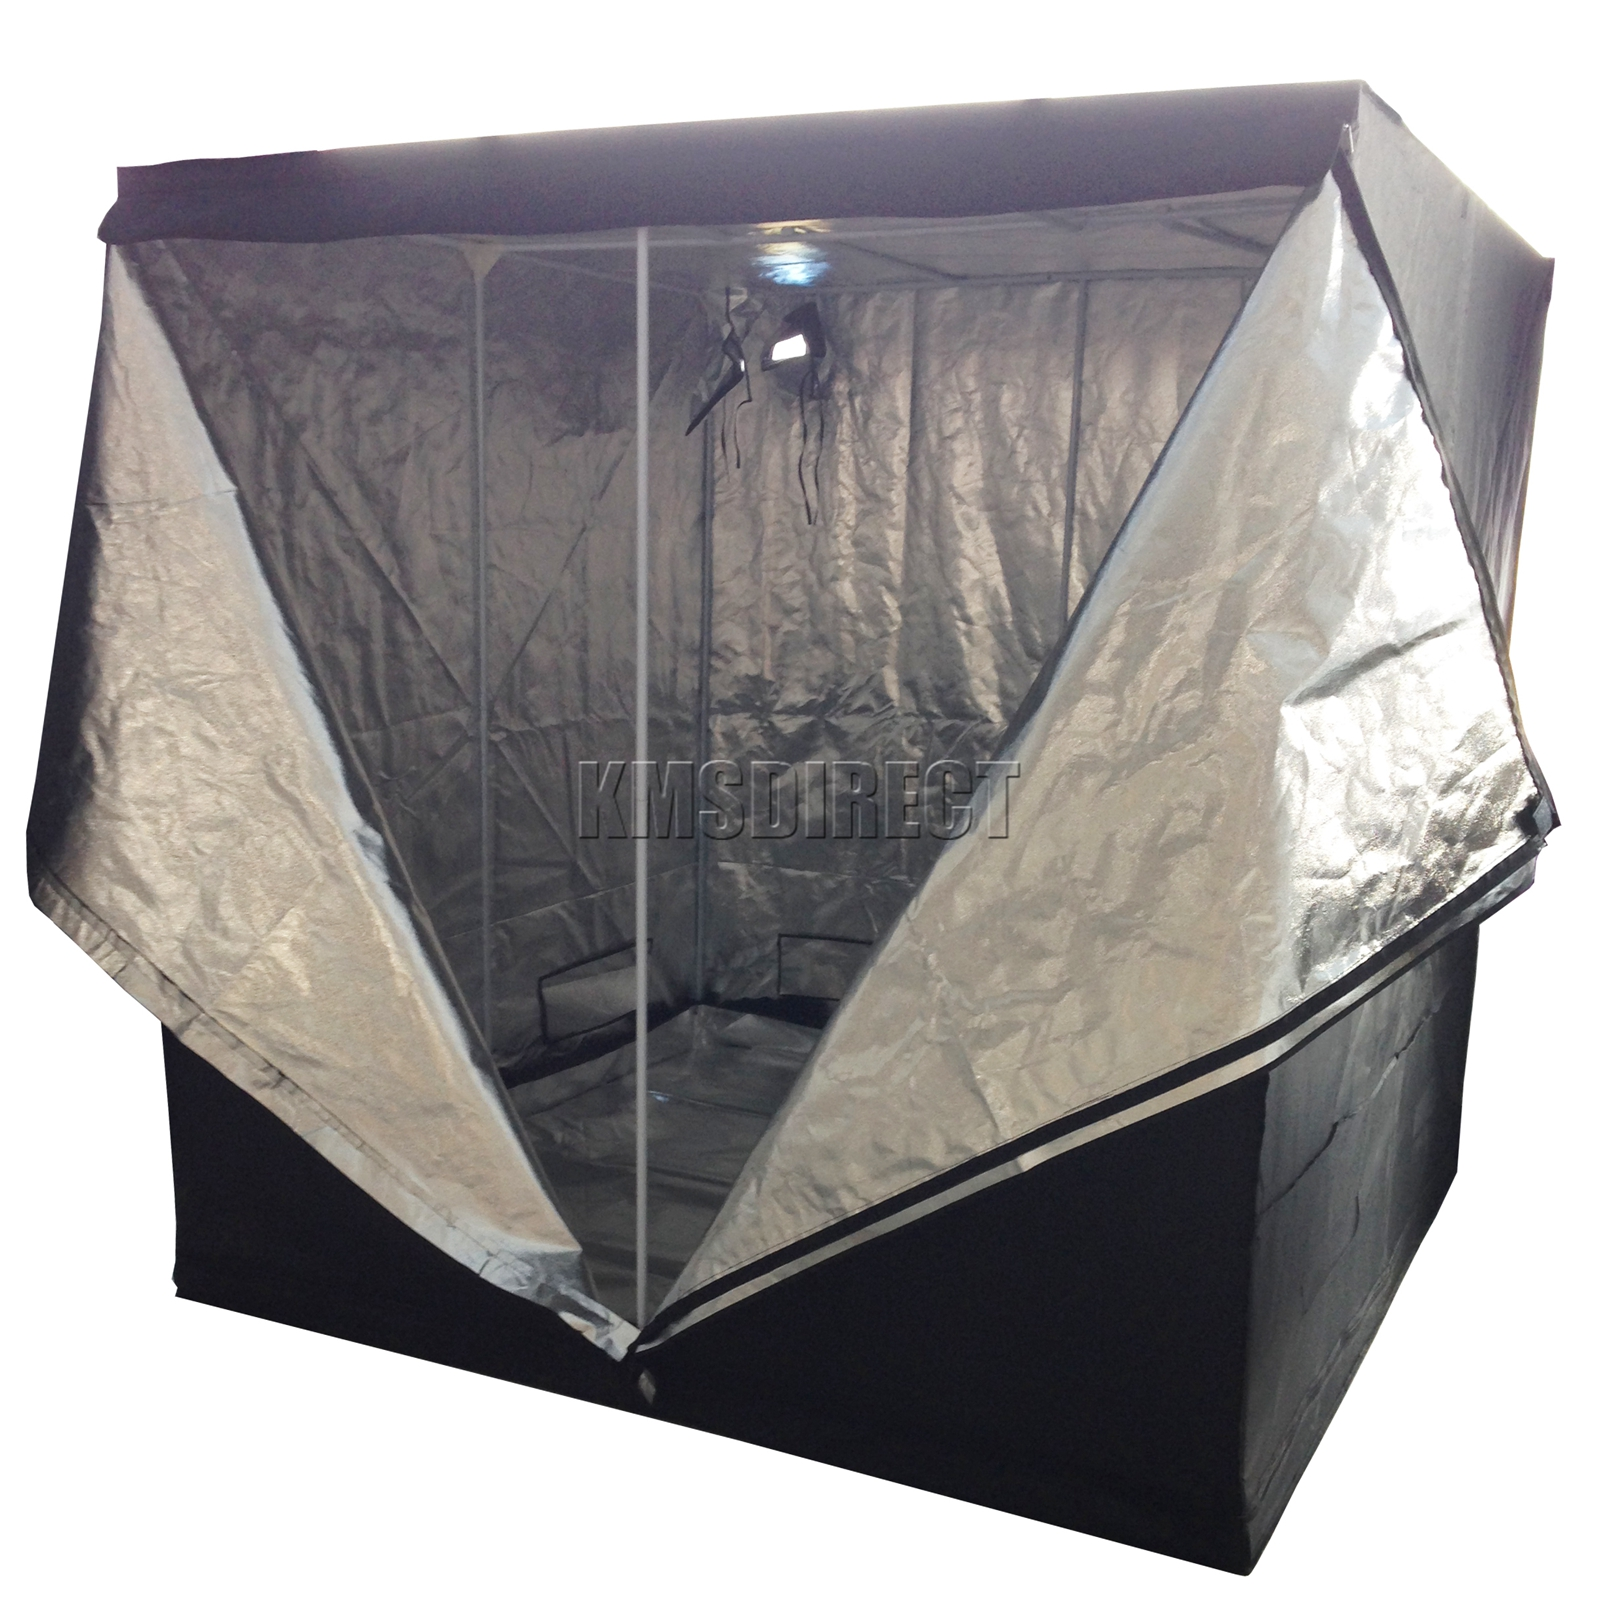 New-Indoor-Grow-Tent-Box-Silver-Mylar-Lined-  sc 1 st  eBay & New Indoor Grow Tent Box Silver Mylar Lined Bud Dark Green Room ...